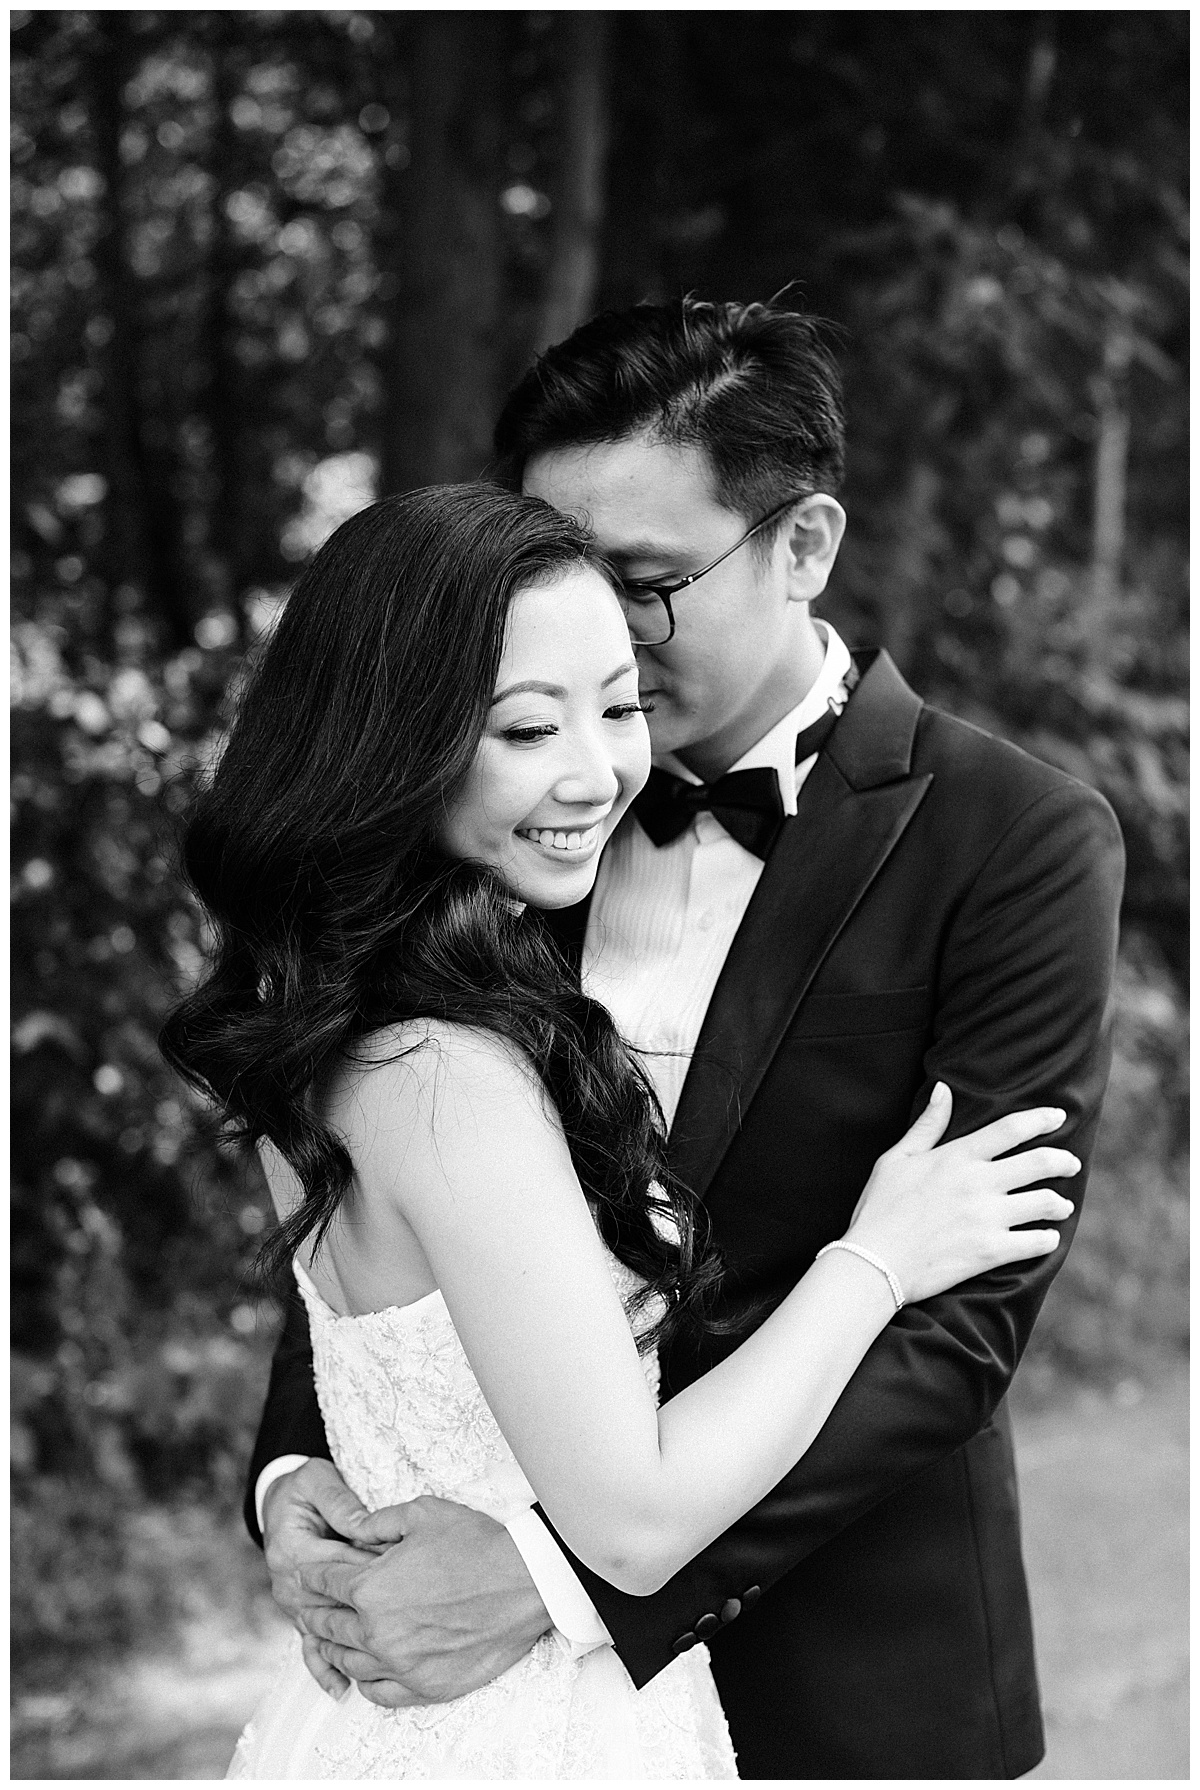 Black and white of groom nuzzling bride while she looks down| asian bride| bride and groom portraits| winery wedding| Toronto photographer| 3photography